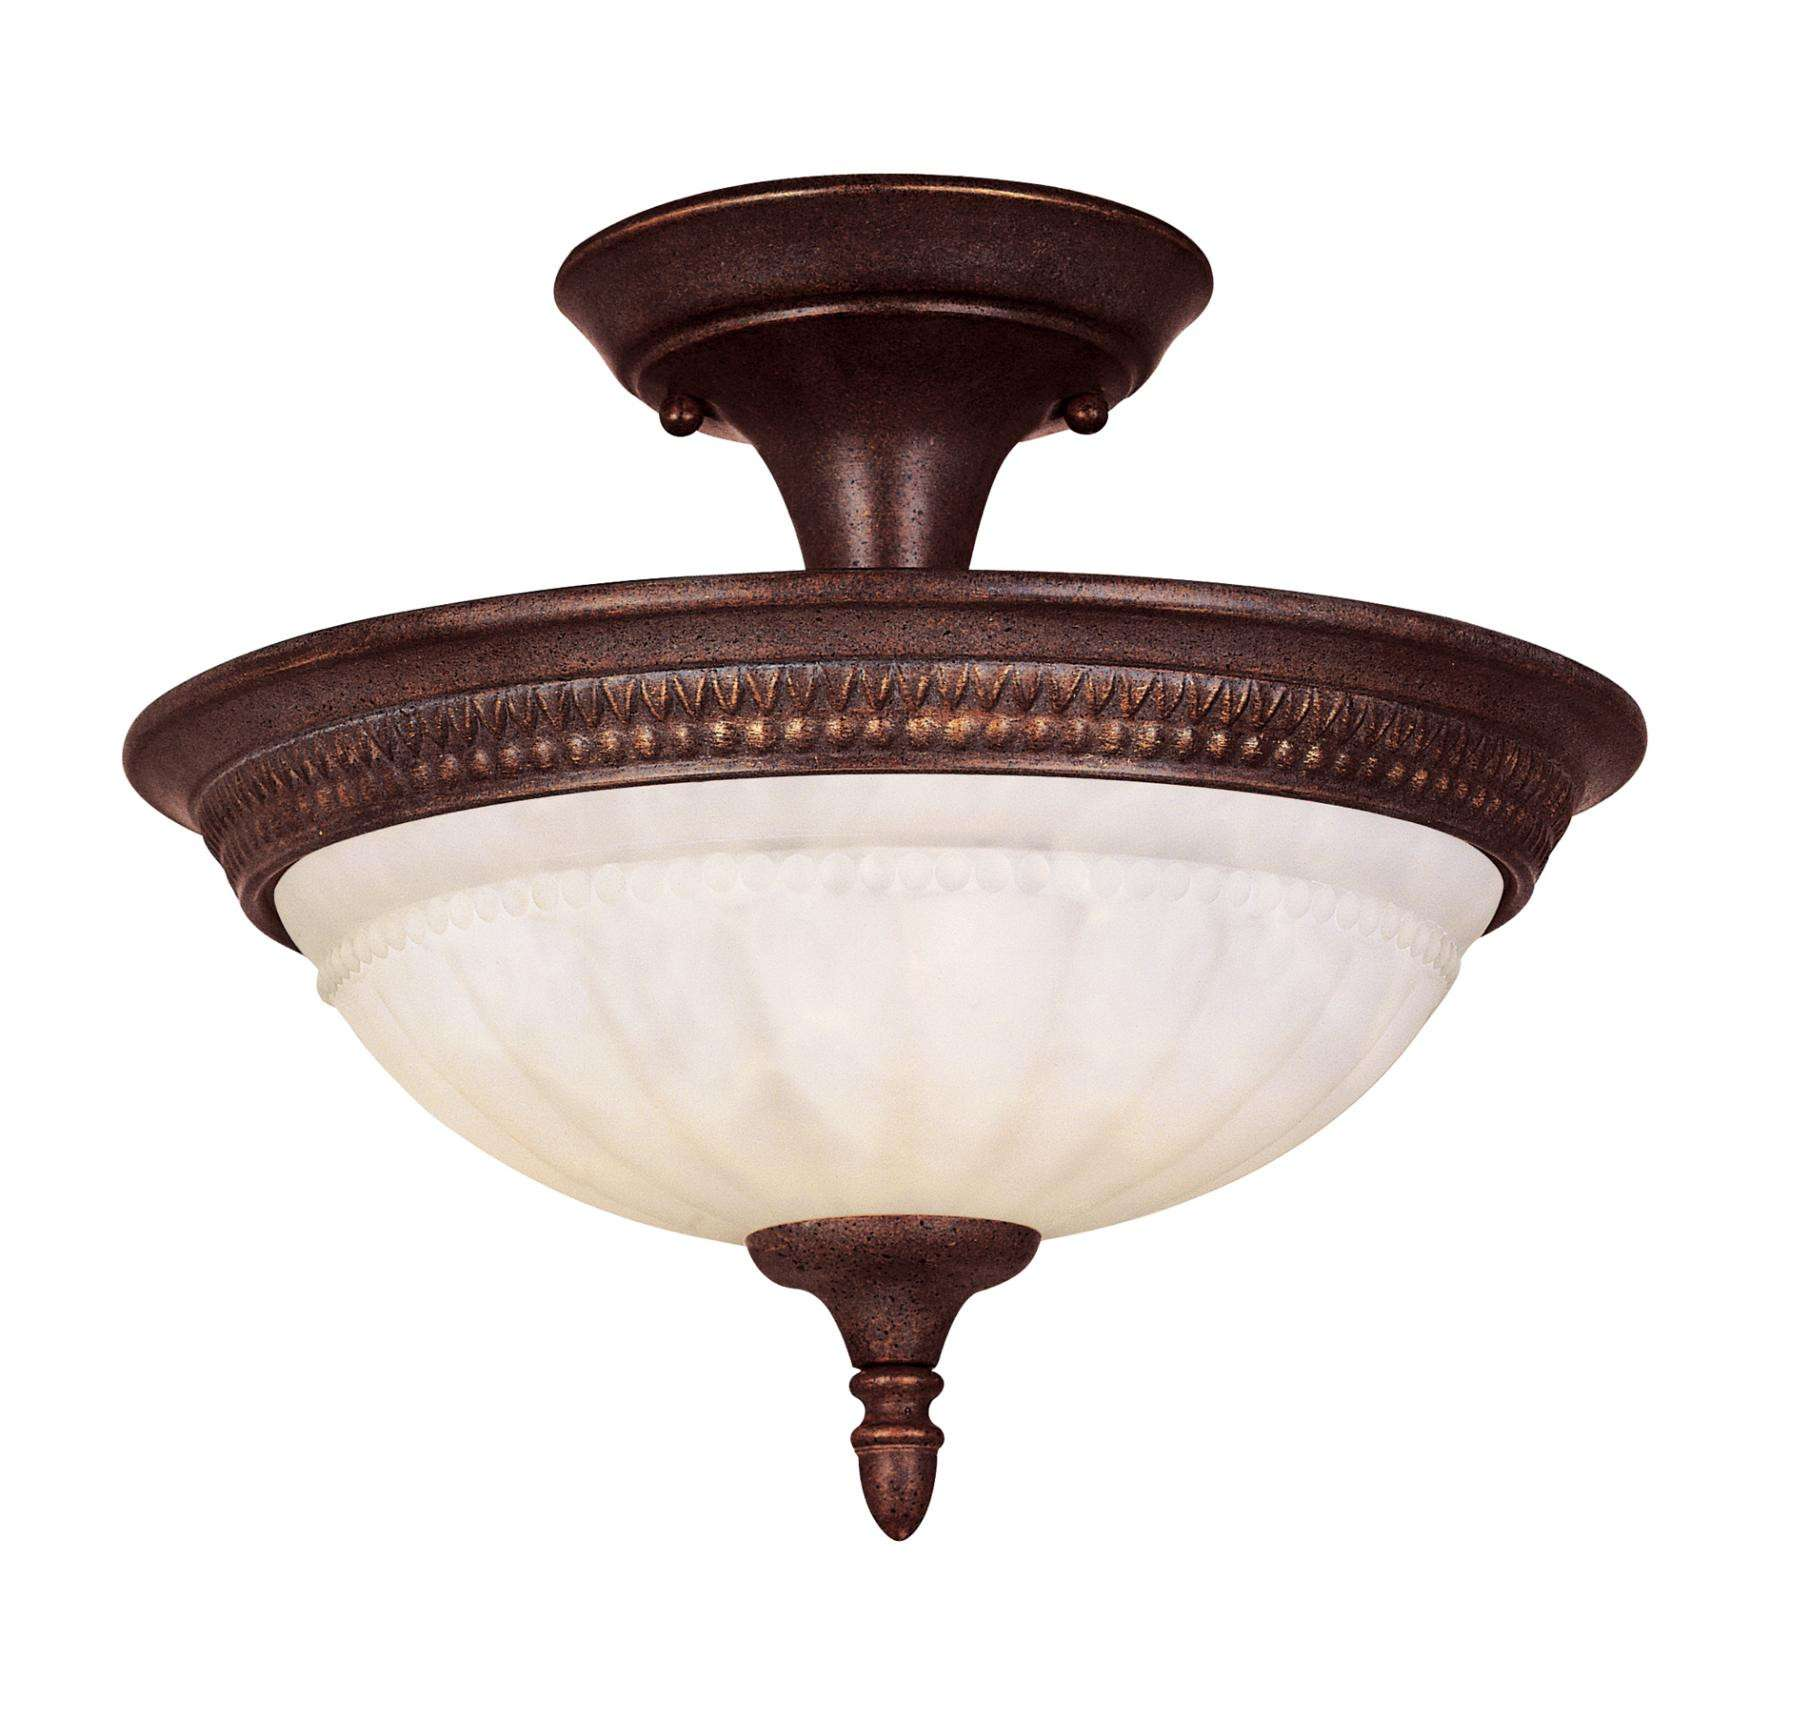 Savoy House KP-6-507-2-40 Liberty Semi-Flush in Walnut Patina Finish with Cream Marble glass